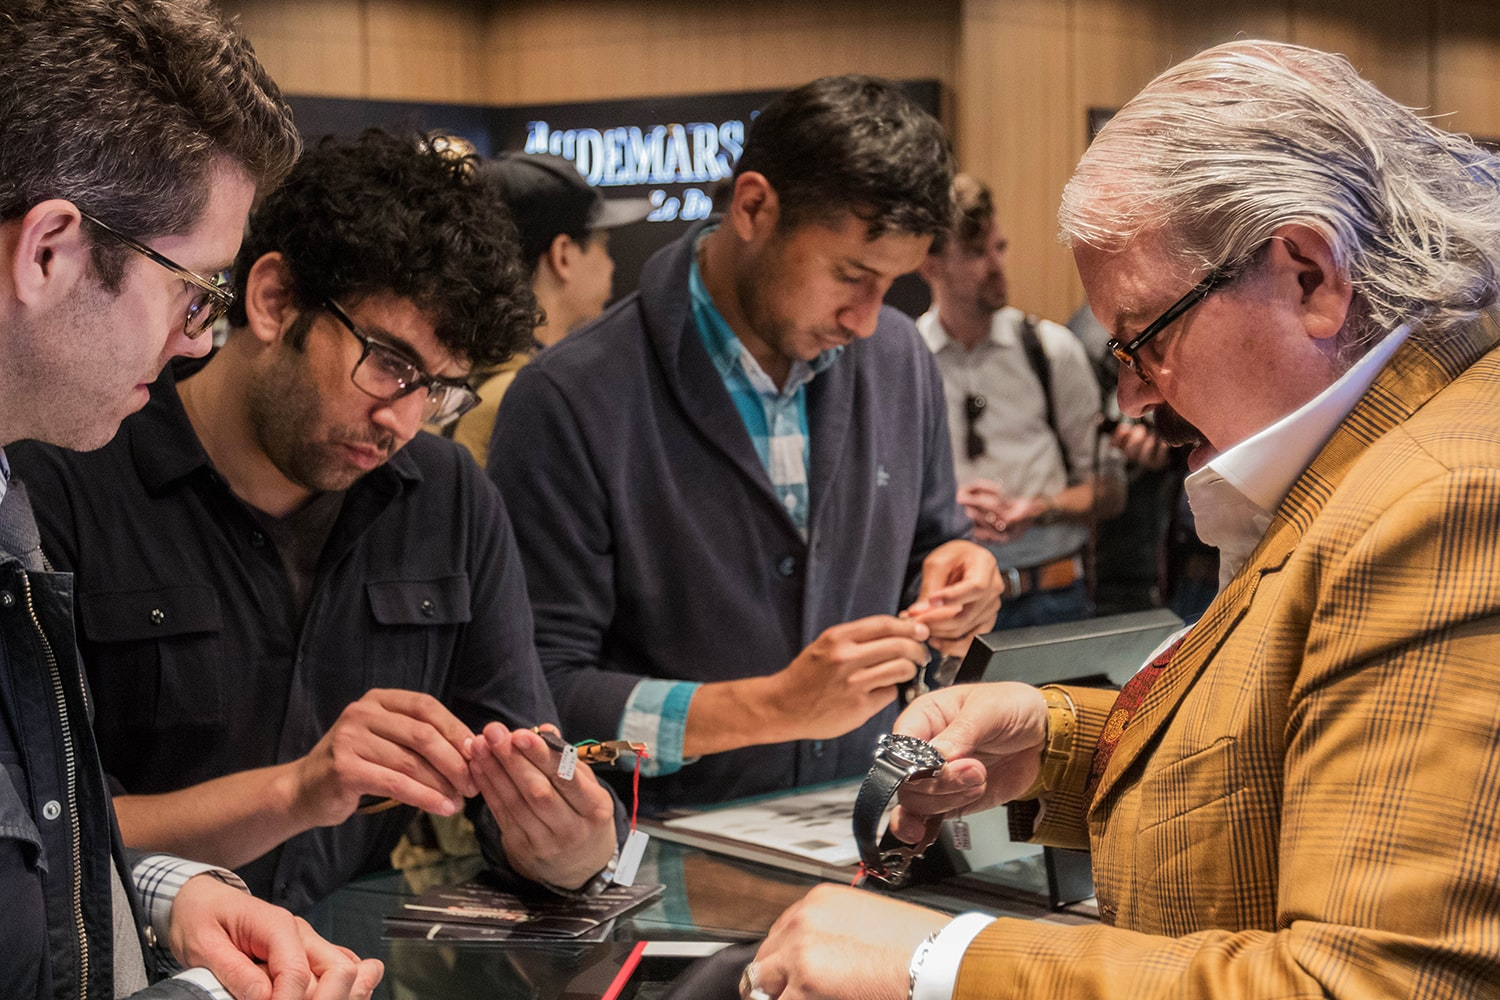 Photo Report: The Tudor Baselworld Novelties At Swiss Fine Timing In Chicago Photo Report: The Tudor Baselworld Novelties At Swiss Fine Timing In Chicago InteractingwithWatches People only 17